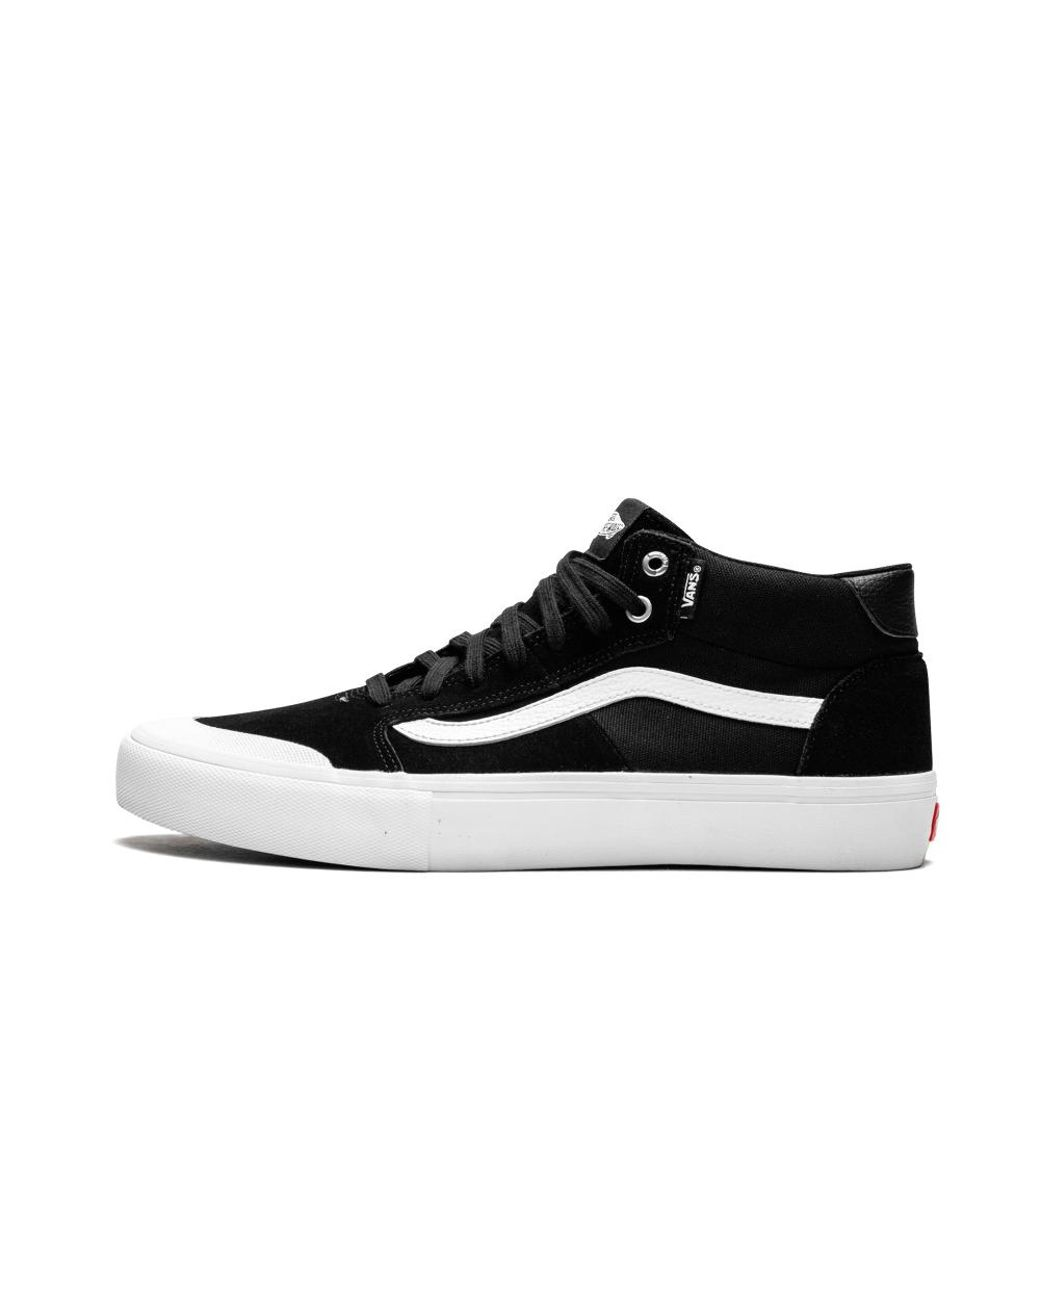 bad9ec50ed Long-Touch to Zoom. Vans - Black Style 112 Mid Pro for Men ...